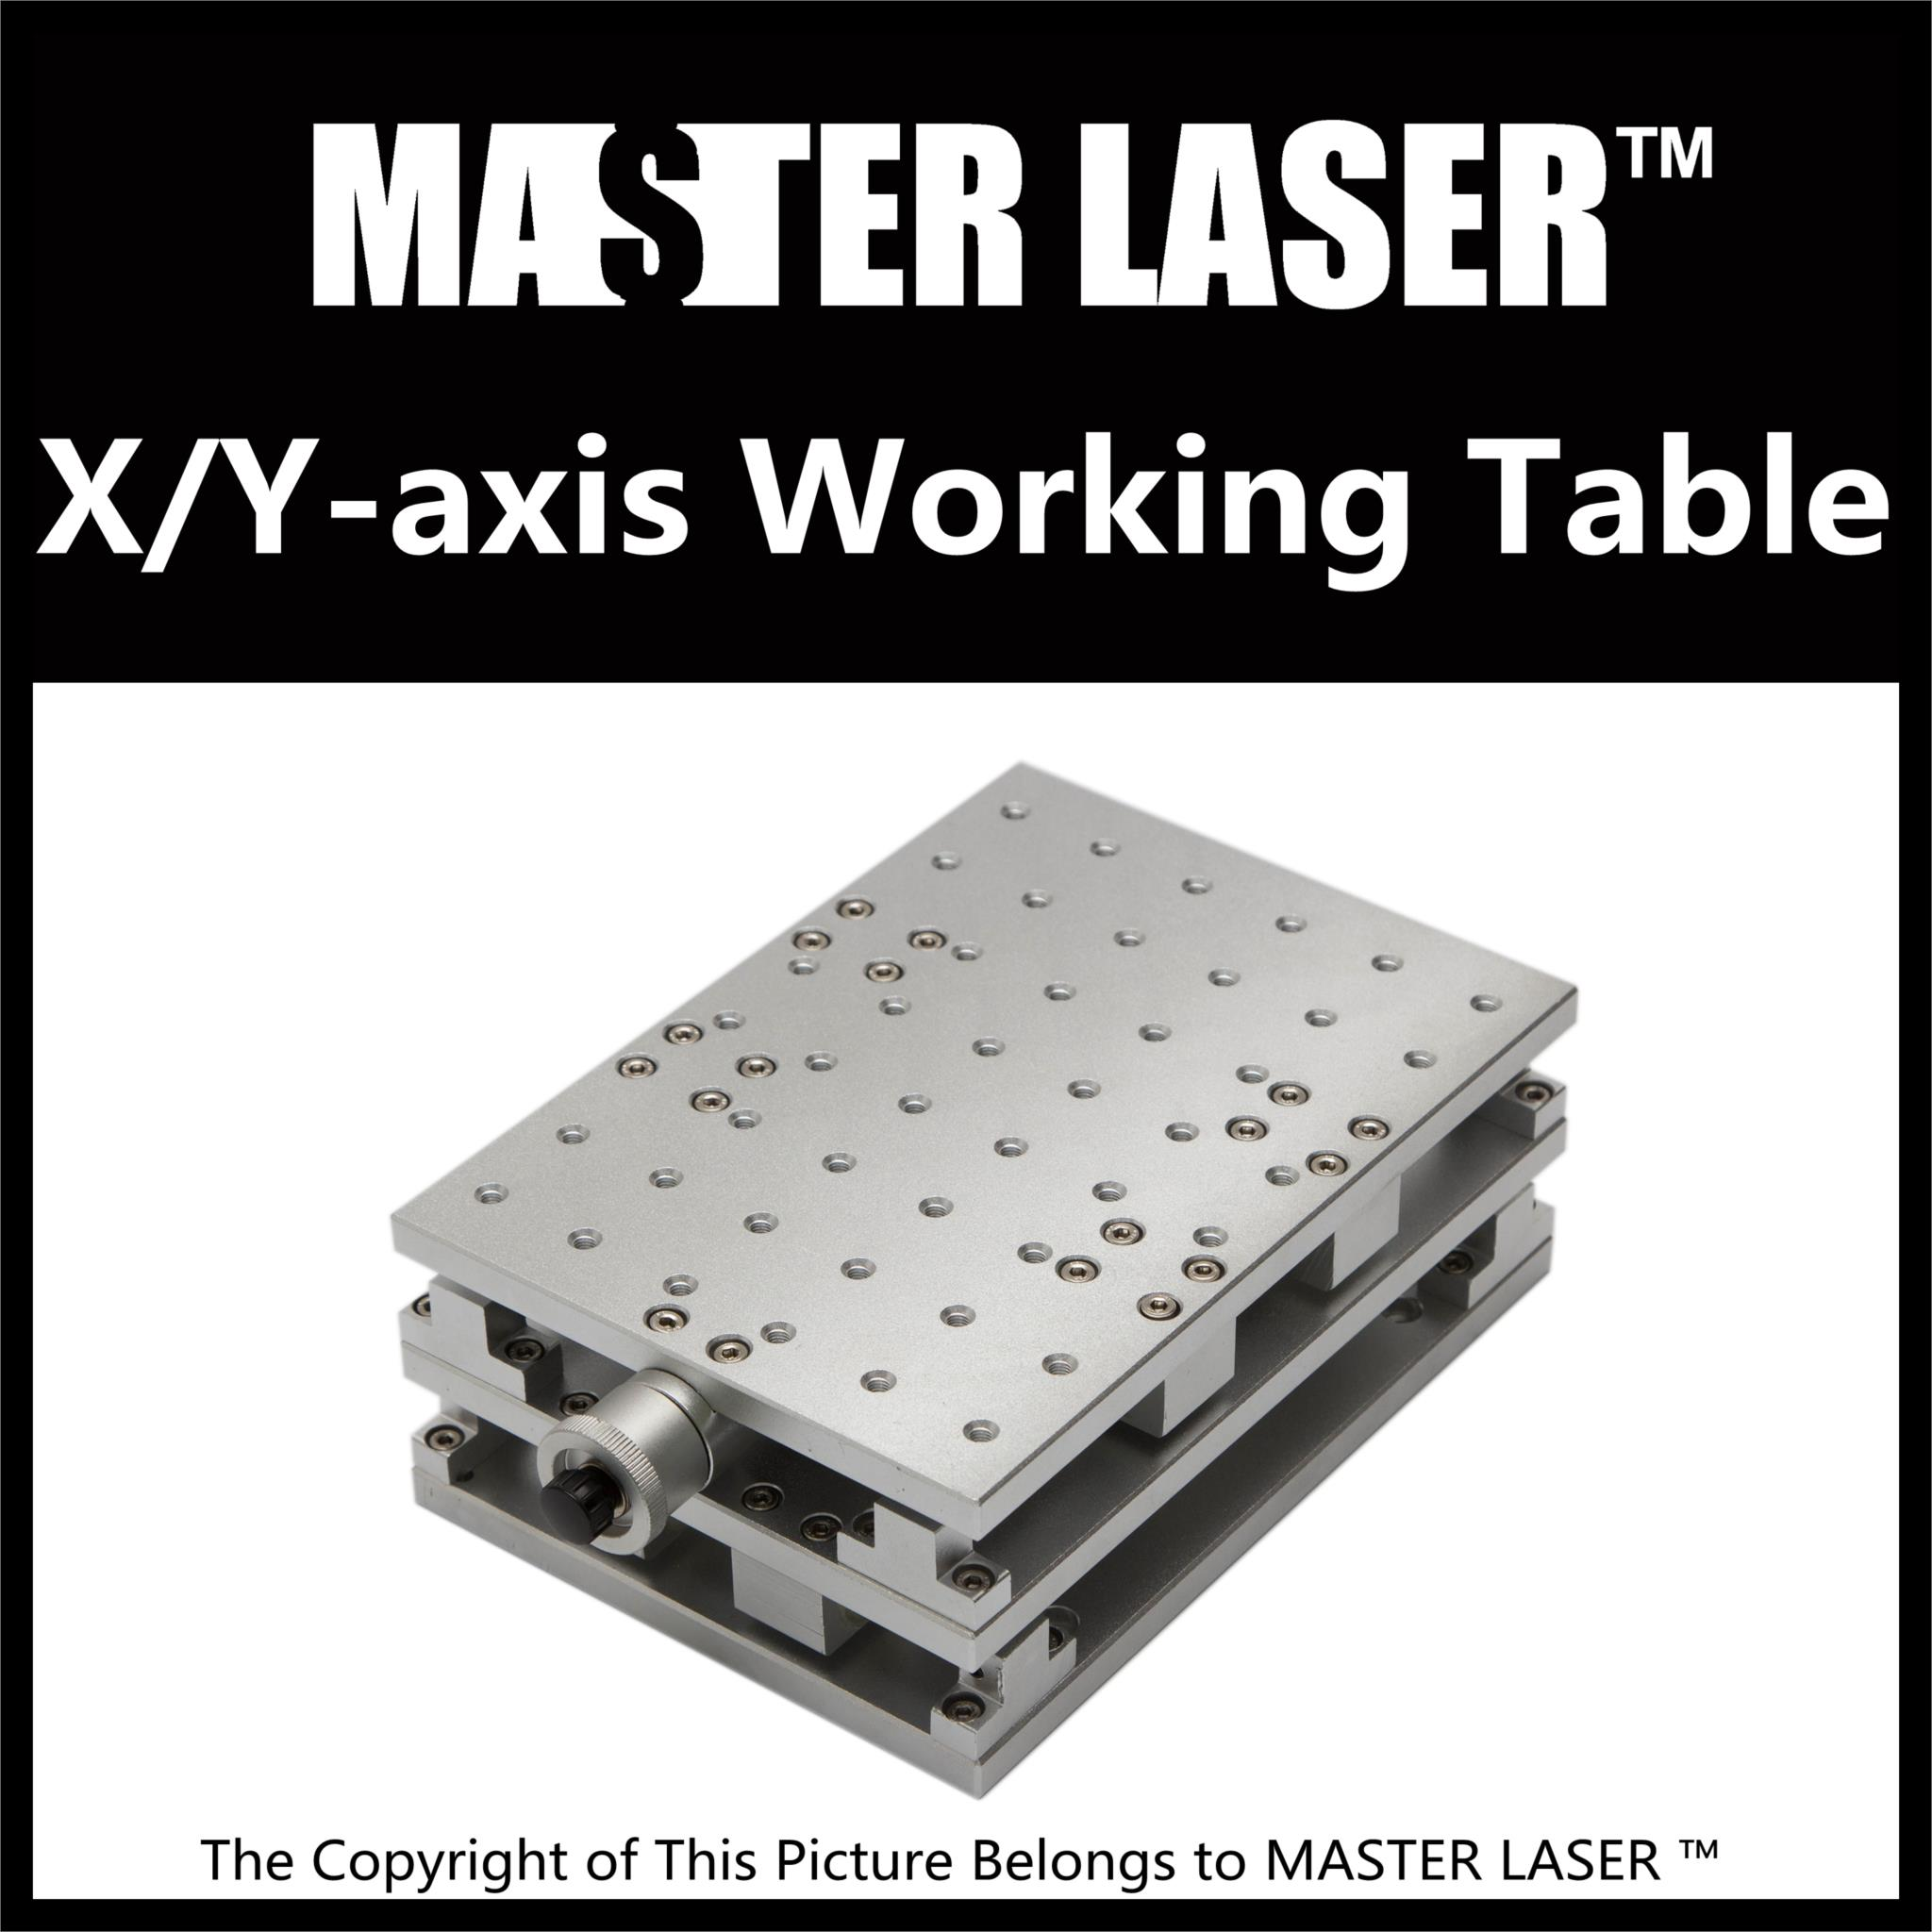 1064nm Fiber Laser Marking Engraving Machine  2 Axis Moving Table 300*220mm Working Size Portable Cabinet Case XY Table ipg 1 mj ylp series high average power fiber laser of laser marking machine